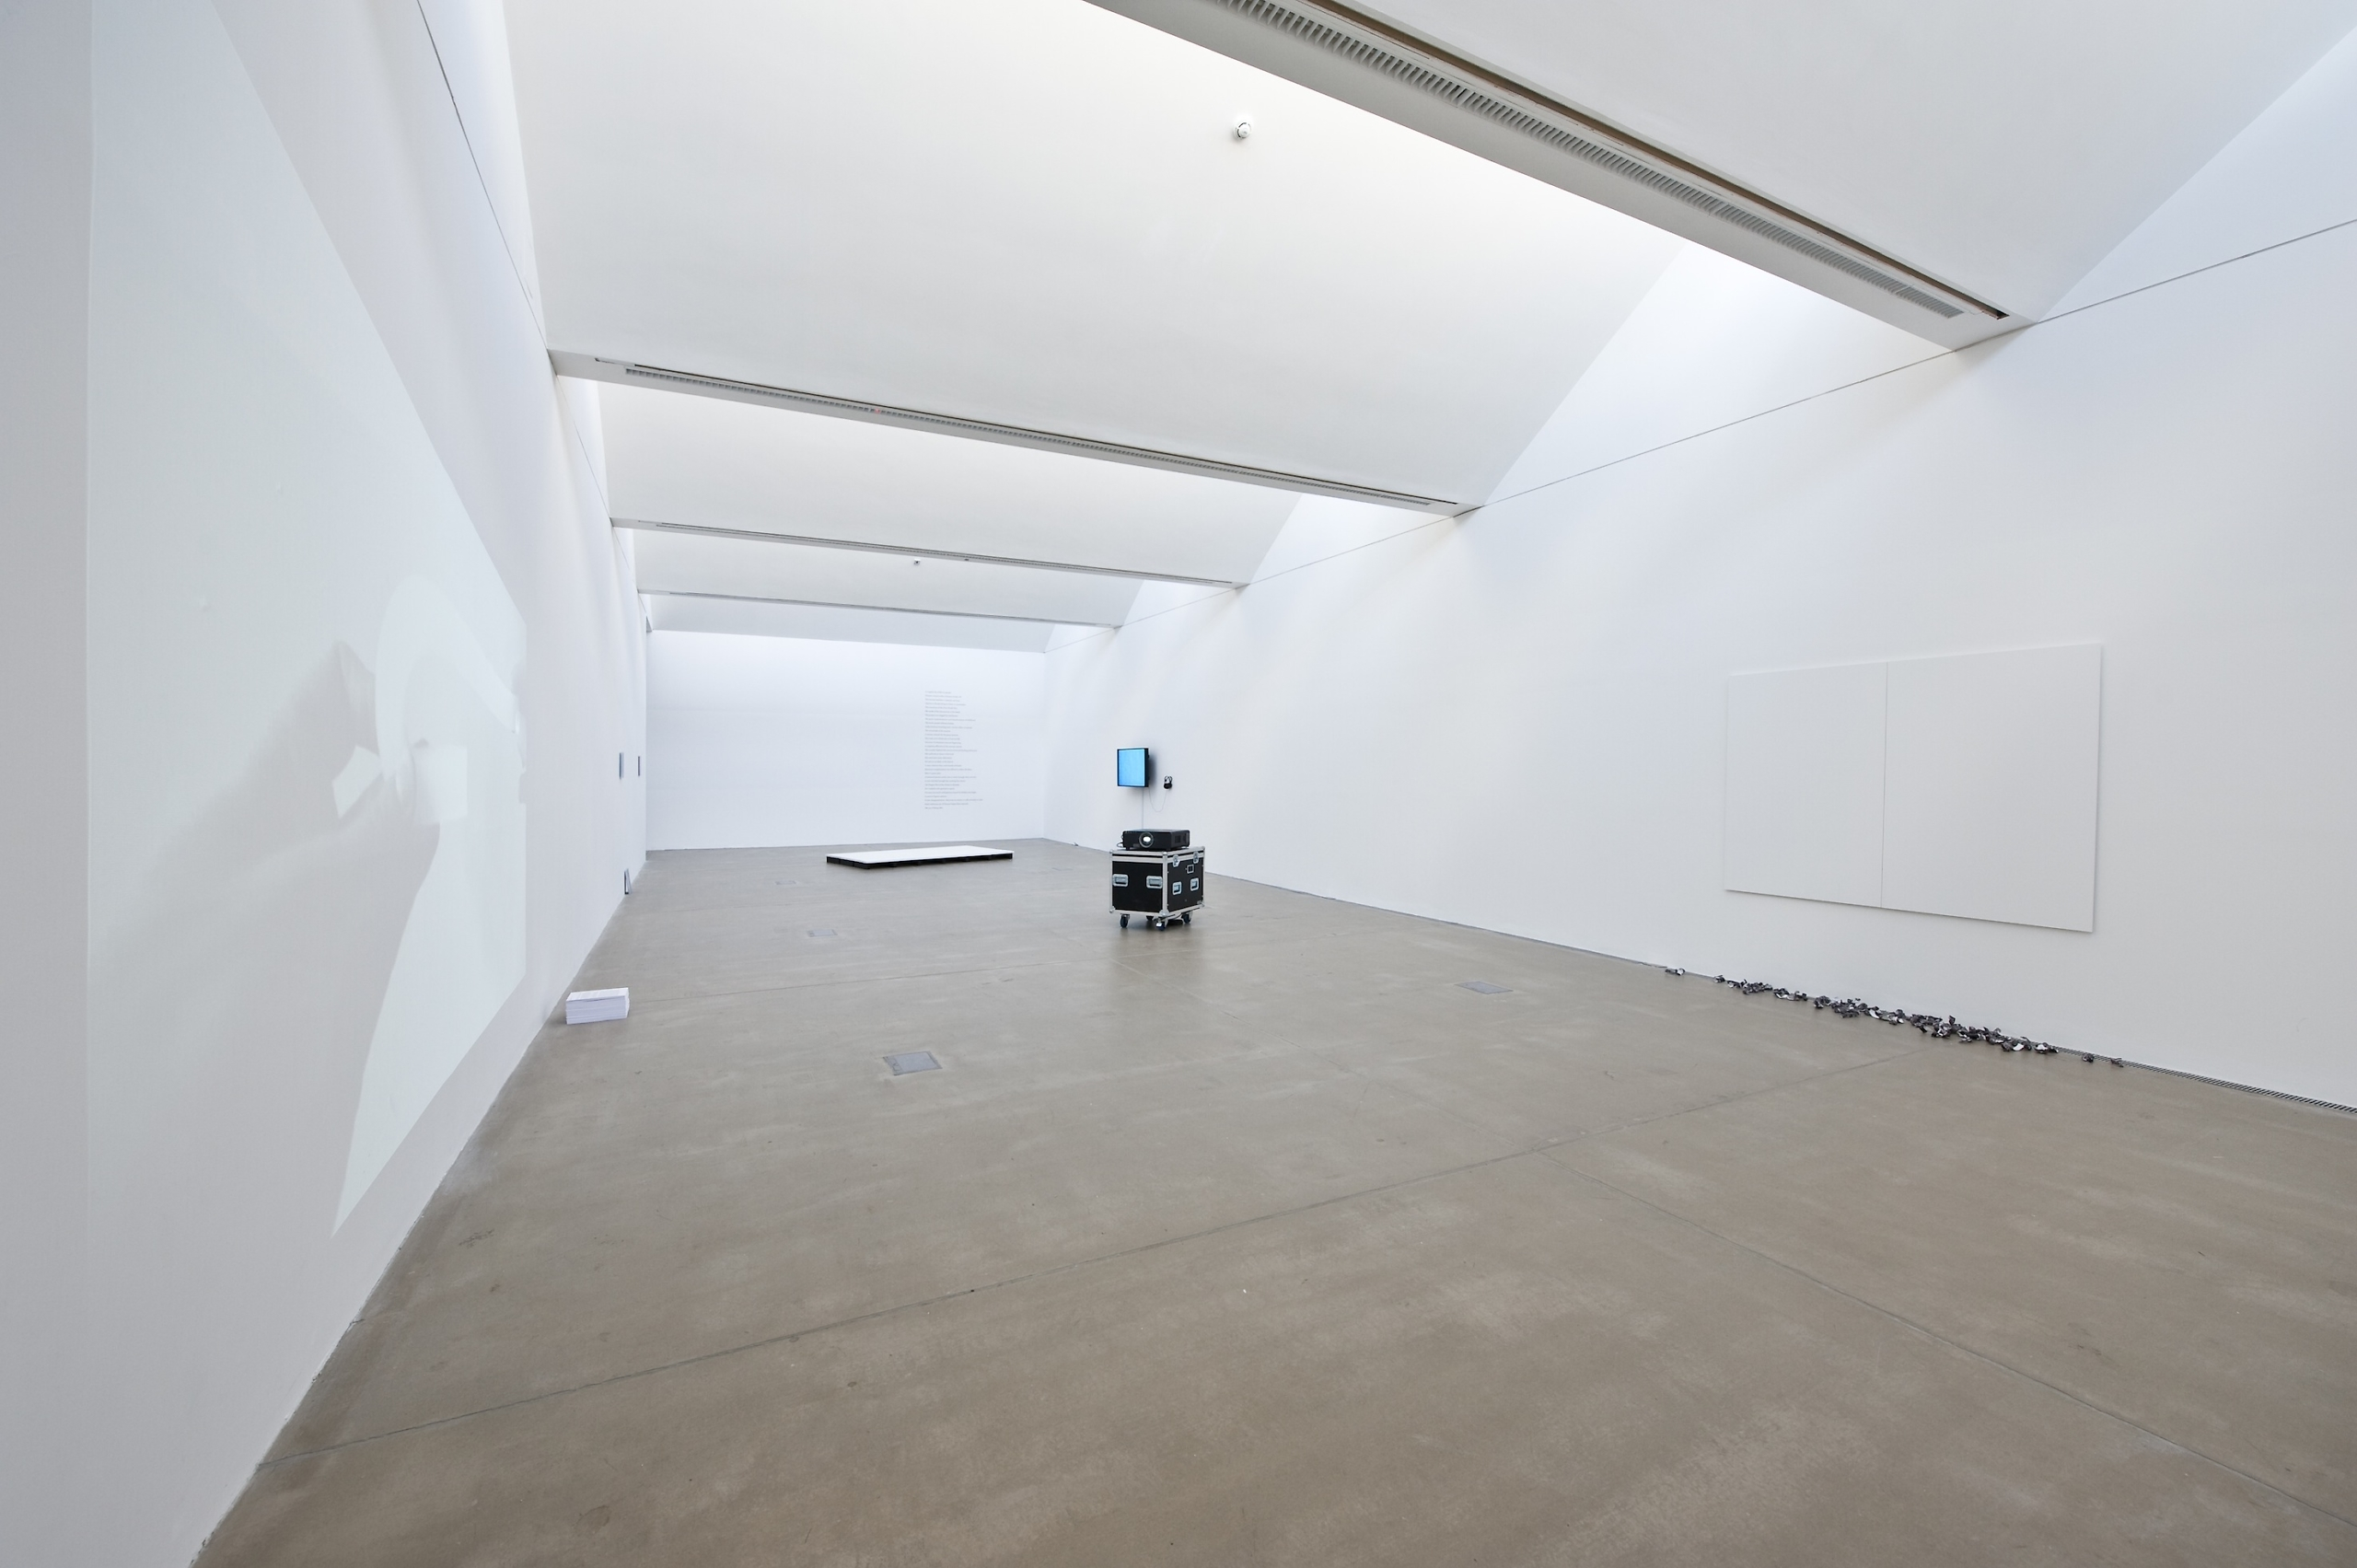 Charlie Godet Thomas, A Method for Writing / A Method for Making, 2014. Installation view. BALTIC Center for Contemporary Art, Newcastle, UK.